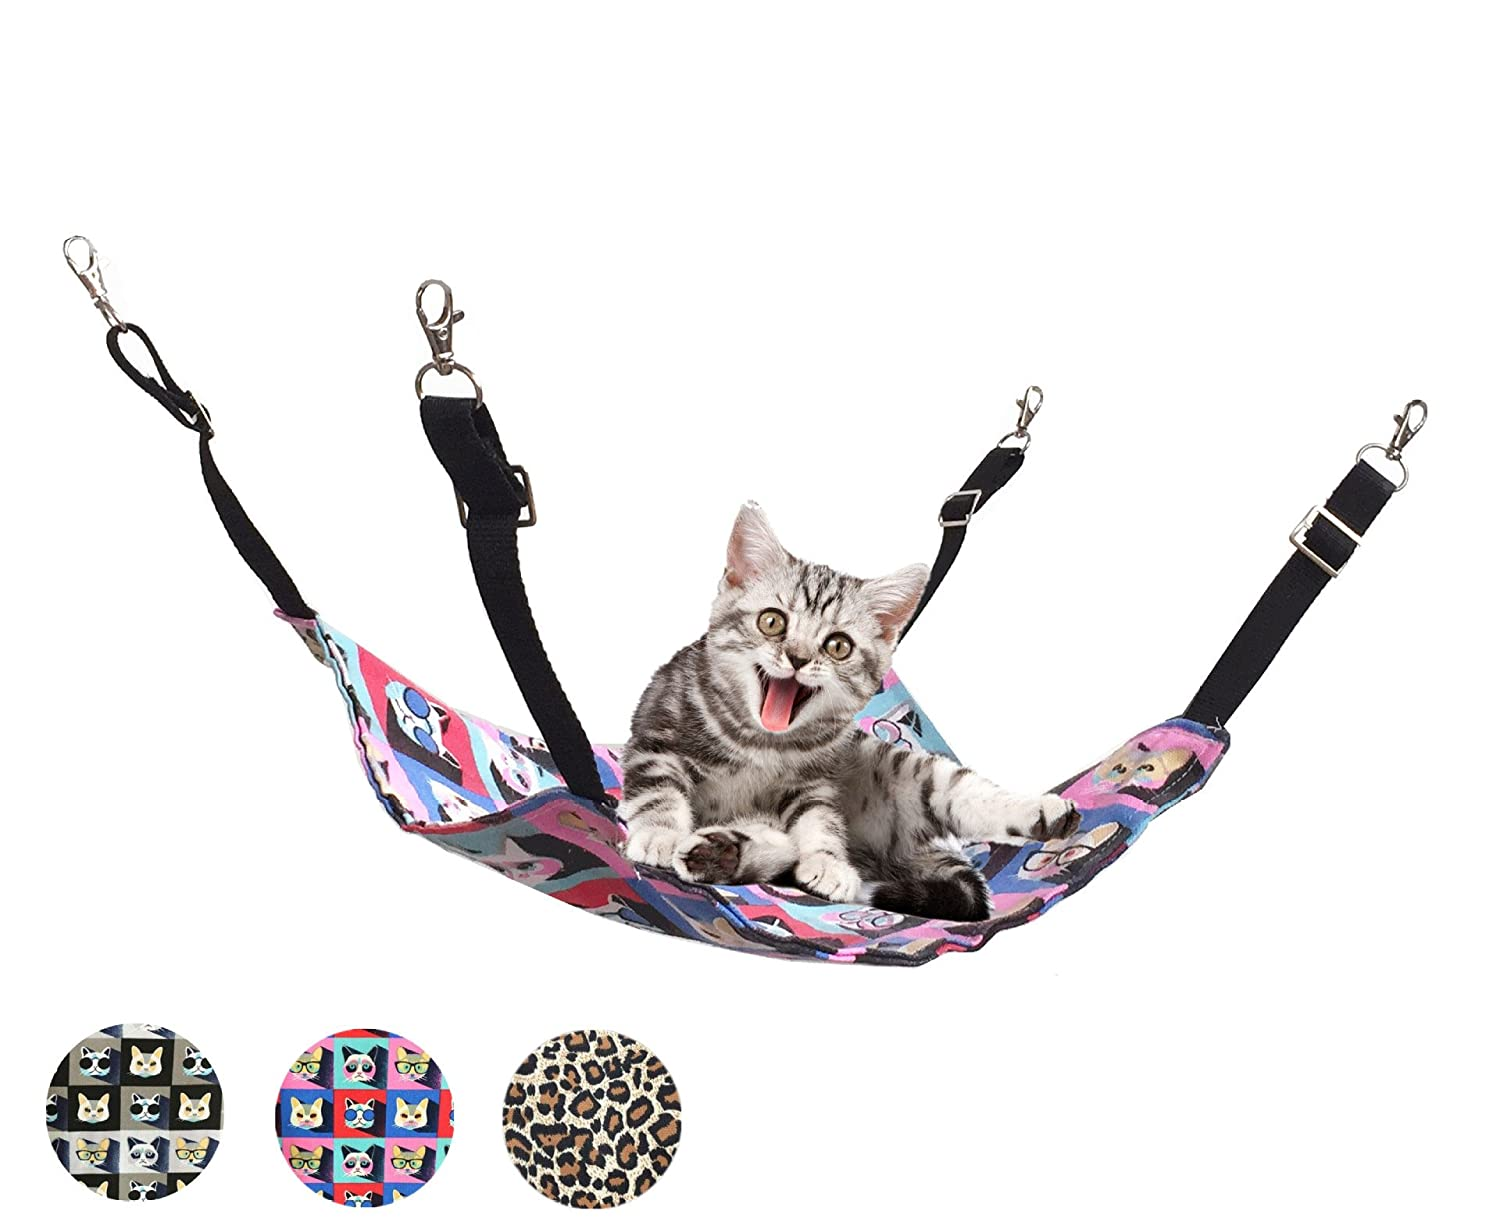 Ecosco Cat Hammock Bed Hanging Pet Perches Bed for Cats Small Dogs Rabbits Small Animals (Black-1)